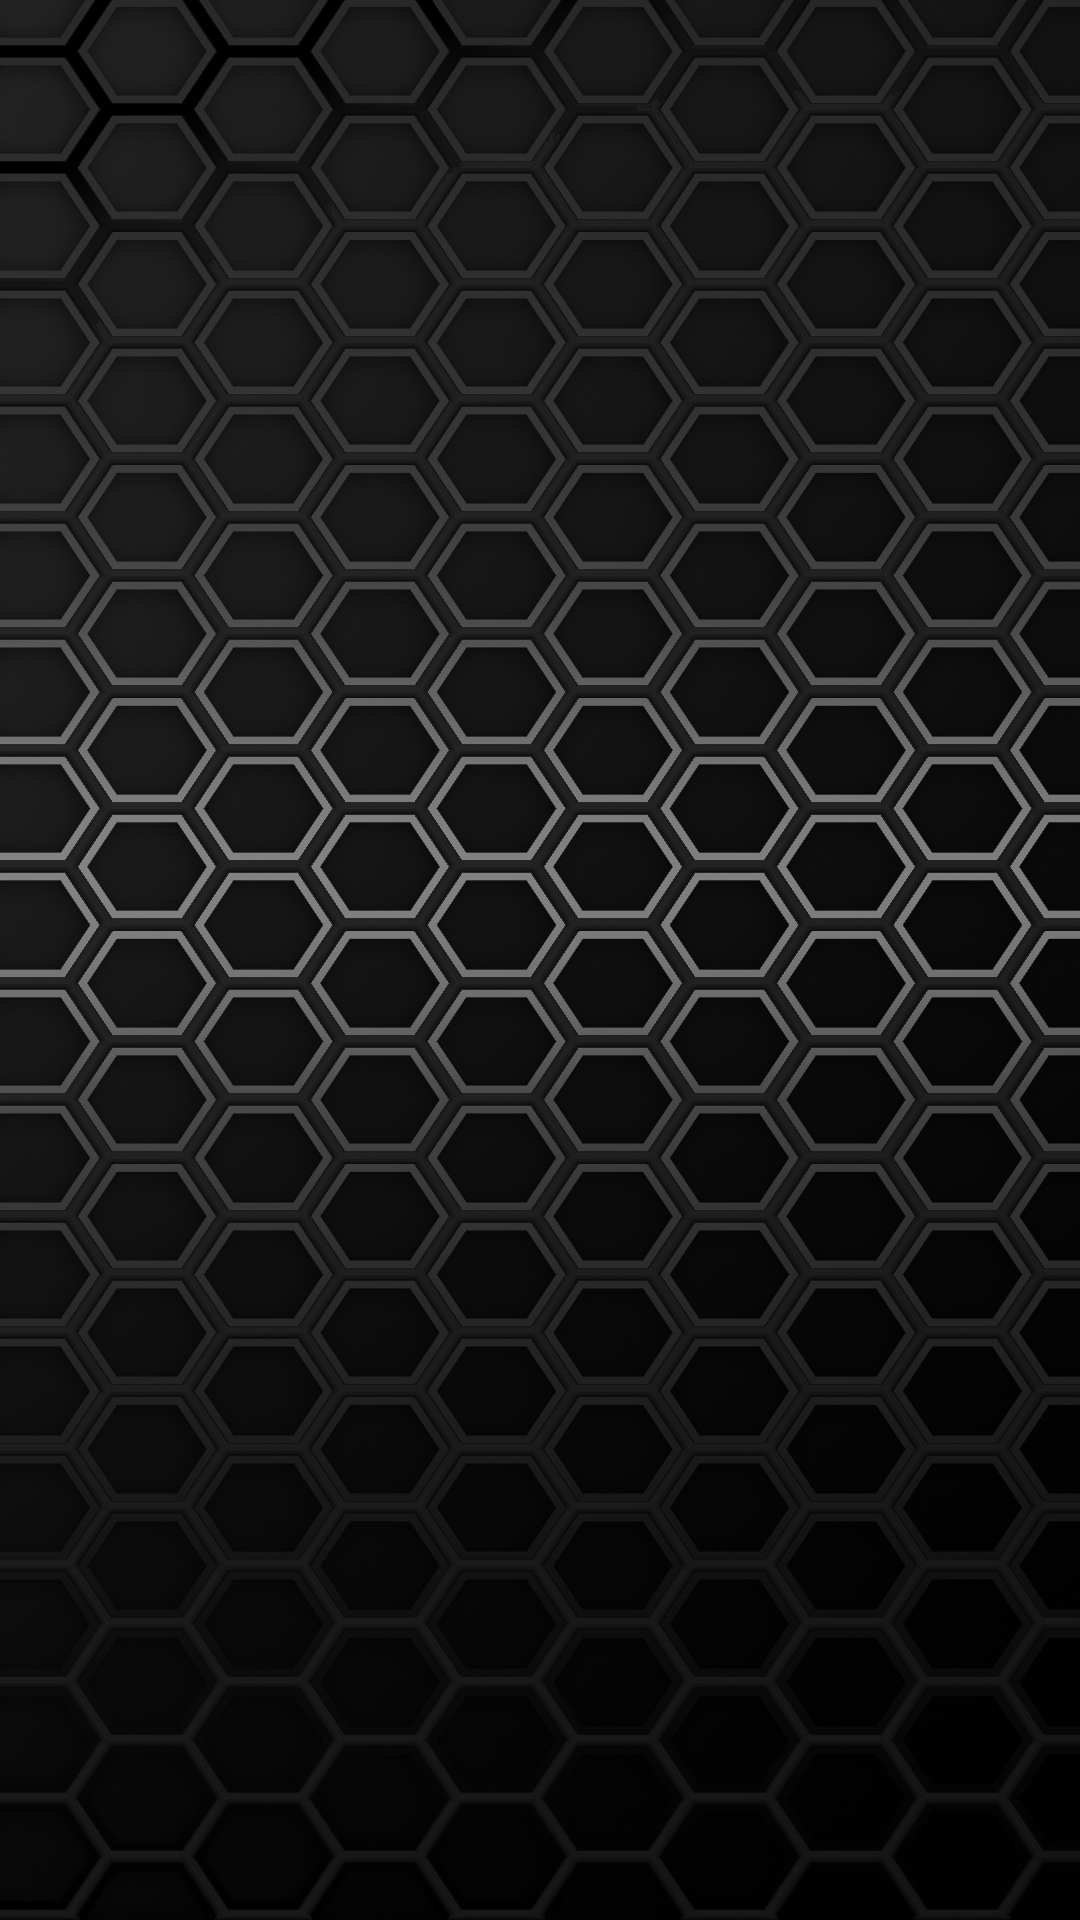 Download Our HD Black Hex Wallpaper For Android Phones ...0319